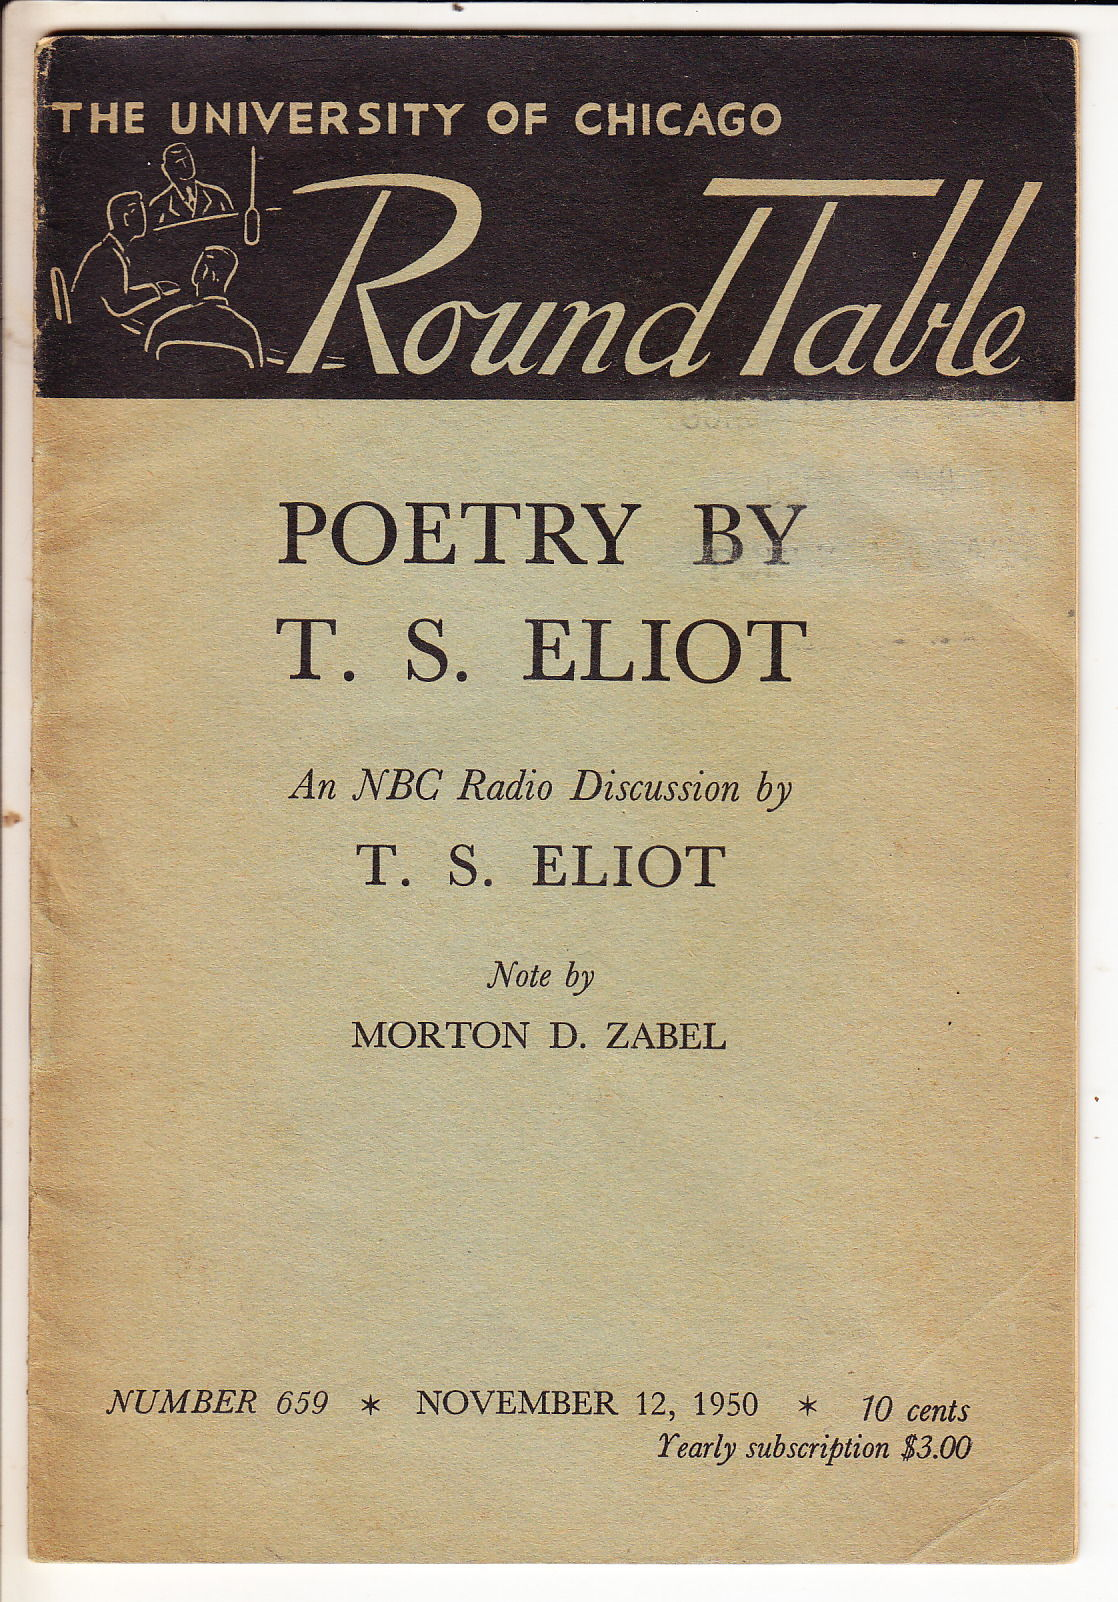 life and literature by t s eliot an american poet An introduction to t s eliot's life and work we could write thousands of words as part of a t s eliot biography, but instead we'll limit ourselves to a reasonably short piece that distils all of the most interesting aspects of eliot's life into one relatively brief post.